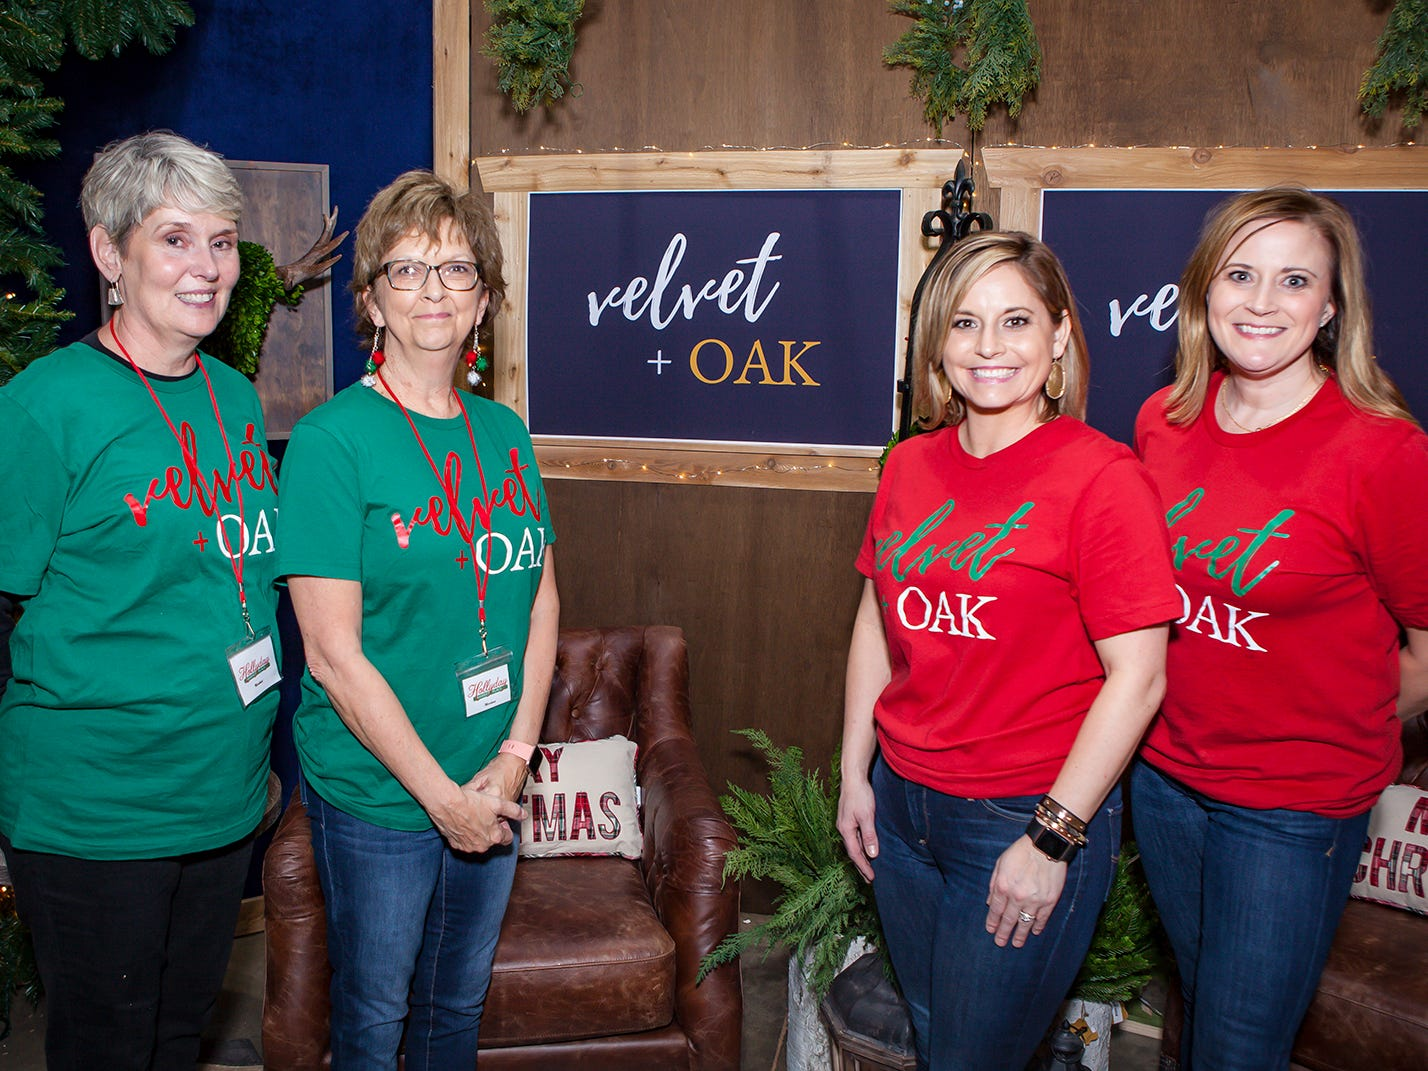 Mary Lowe, Terri Holmes, Danielle Holmes and Collen Fogle at Mistletoe & Martinis, the preview party for Junior League of Murfreesboro's 2018 Hollyday Marketplace.